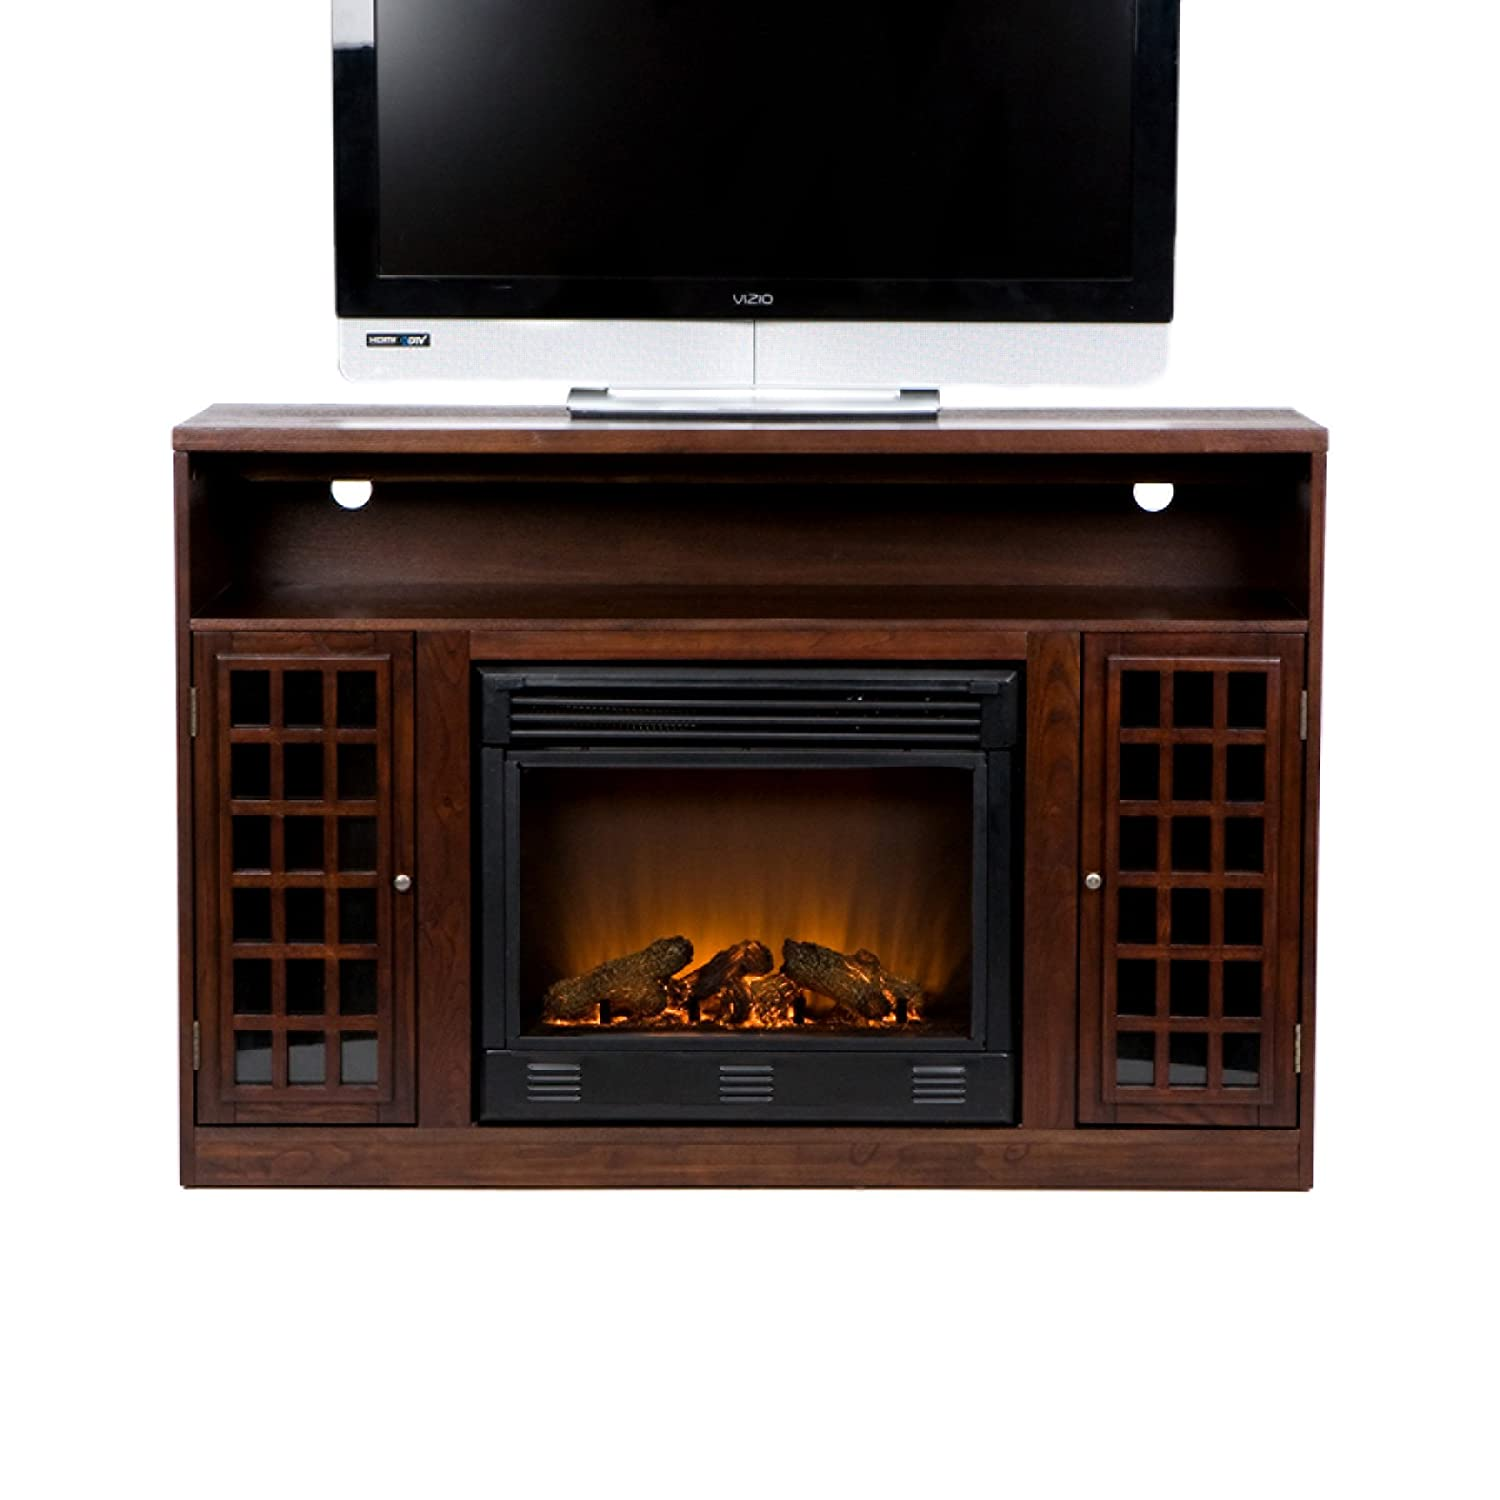 Amazon.com: Narita Media Electric Fireplace - Espresso: Kitchen & Dining